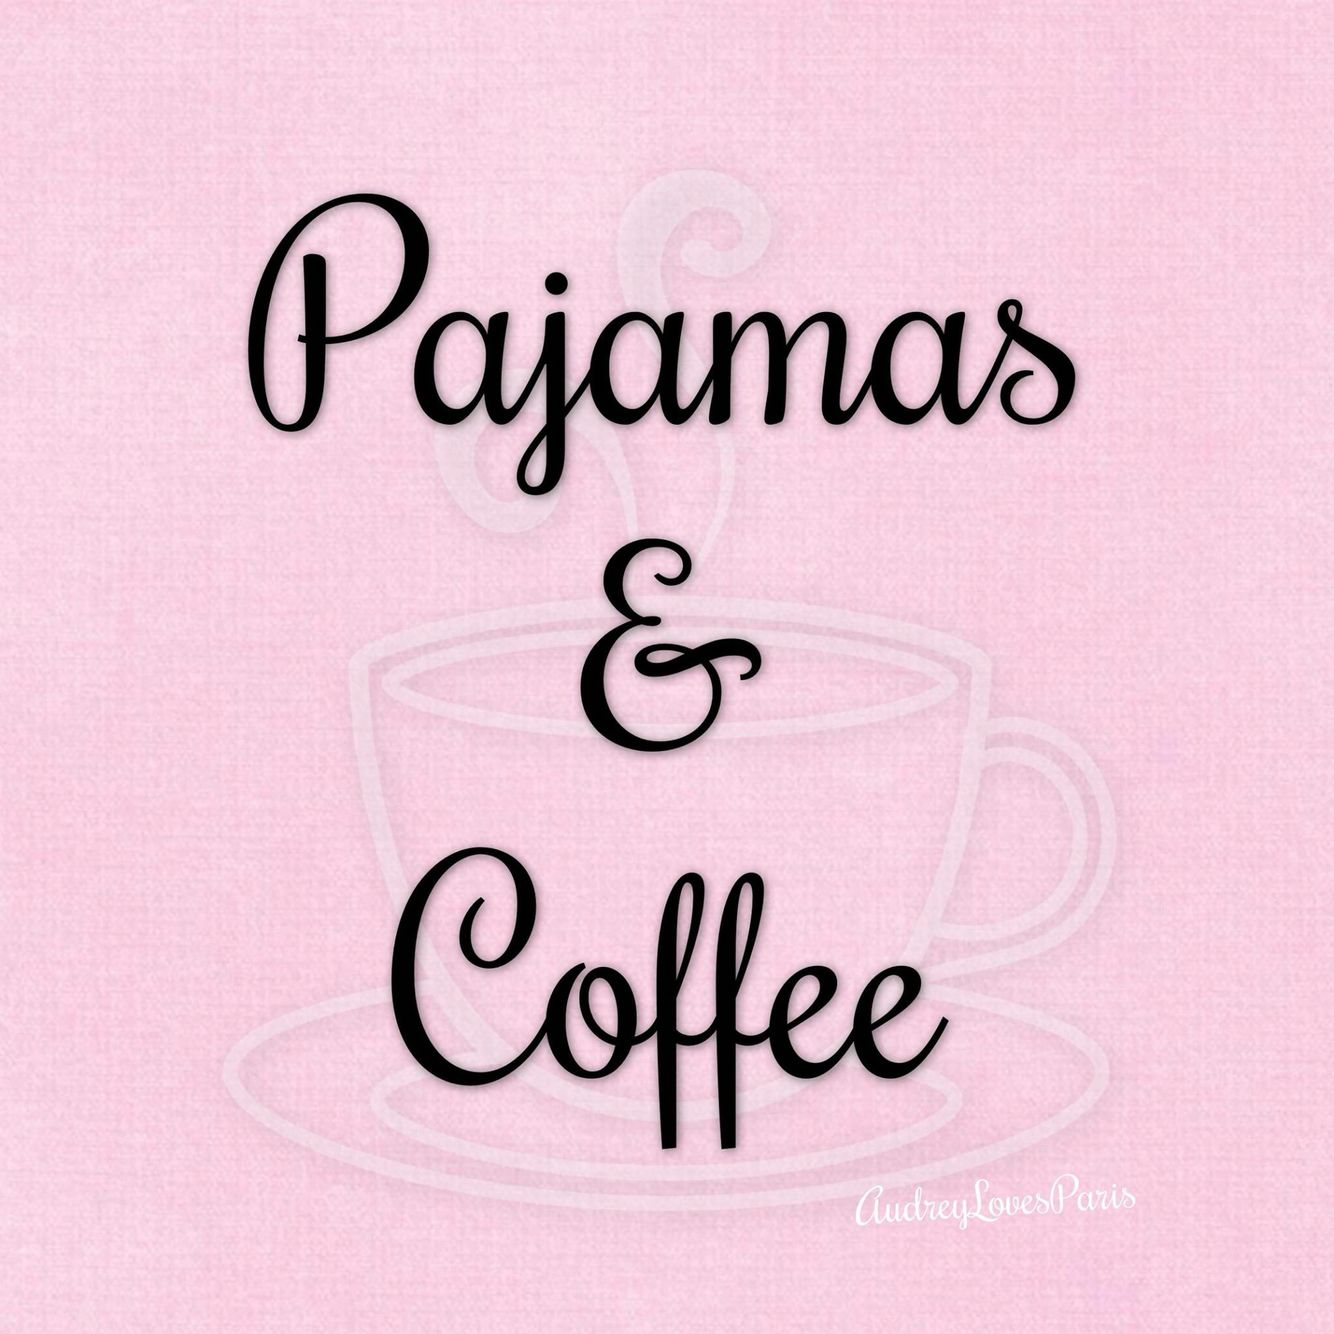 Pajamas and coffee, it's a beautiful thing! Things I